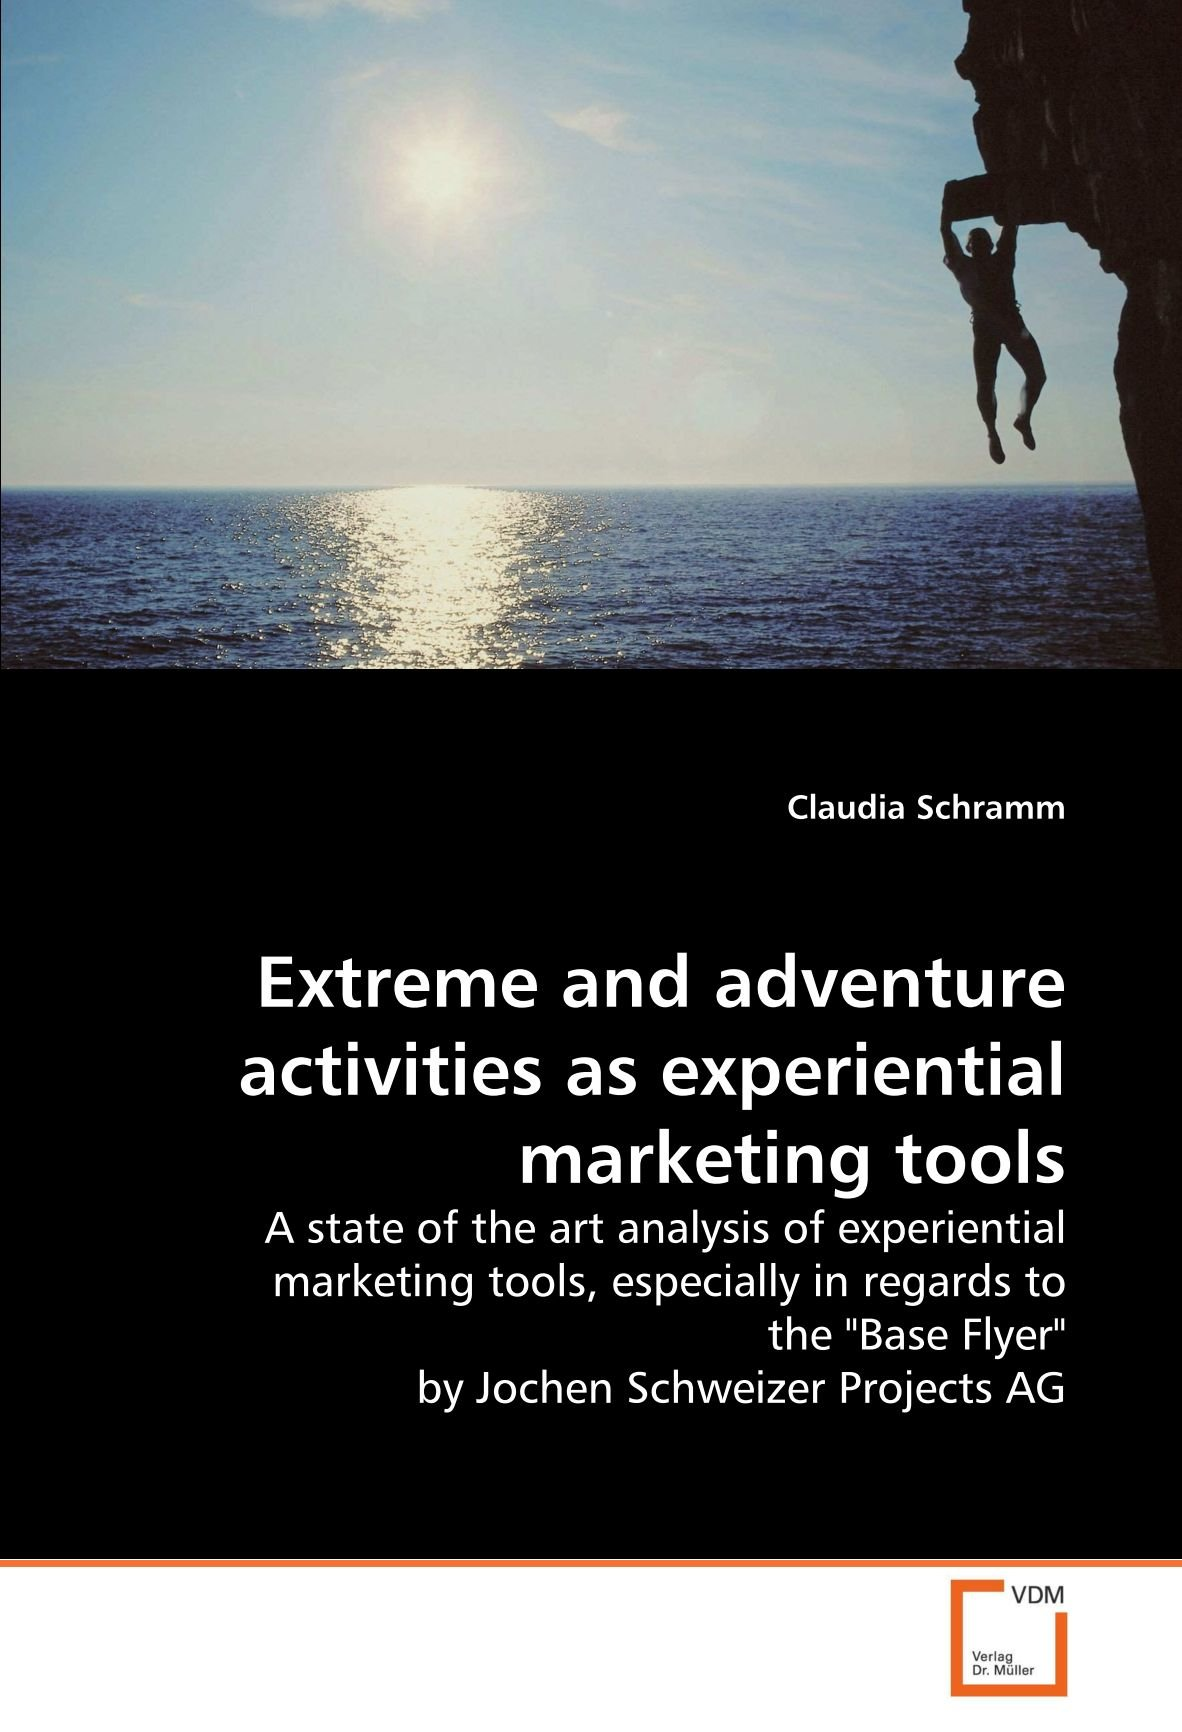 """Download Extreme and adventure activities as experiential marketing tools: A state of the art analysis of experiential marketing tools, especially in regards to the """"Base Flyer"""" by Jochen Schweizer Projects AG ebook"""